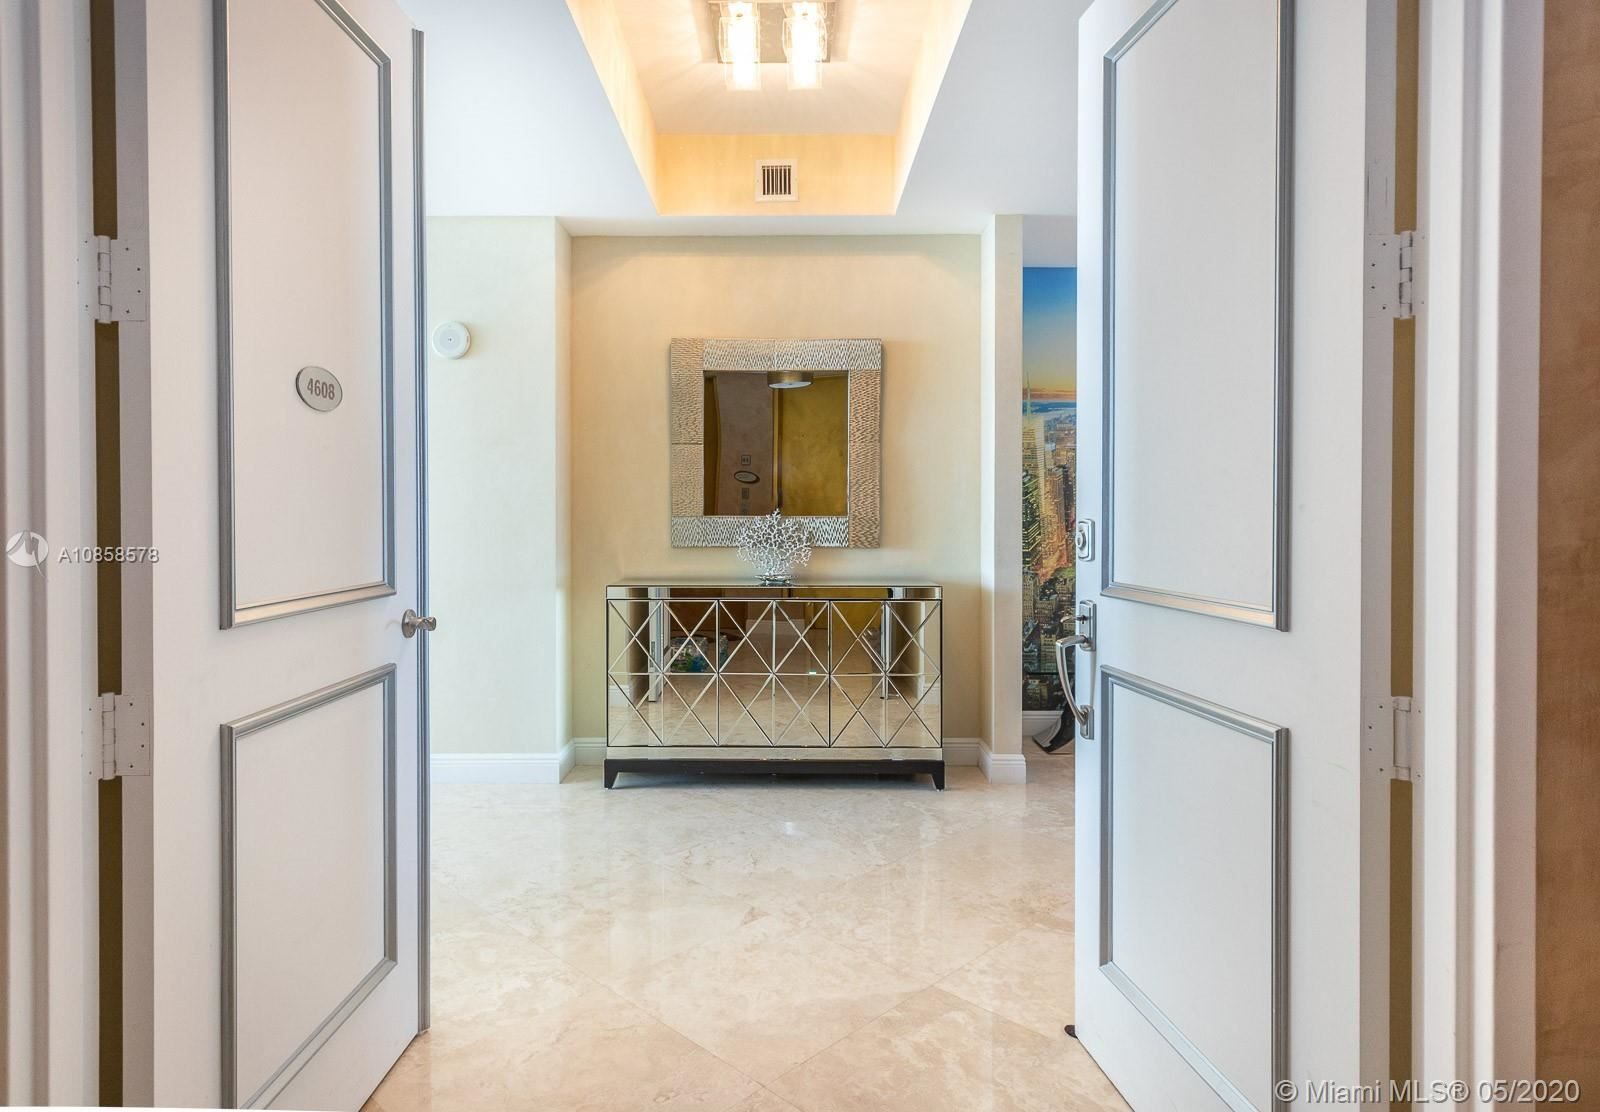 18101 Collins Ave #4608, Sunny Isles, FL 33160 - #: A10858578